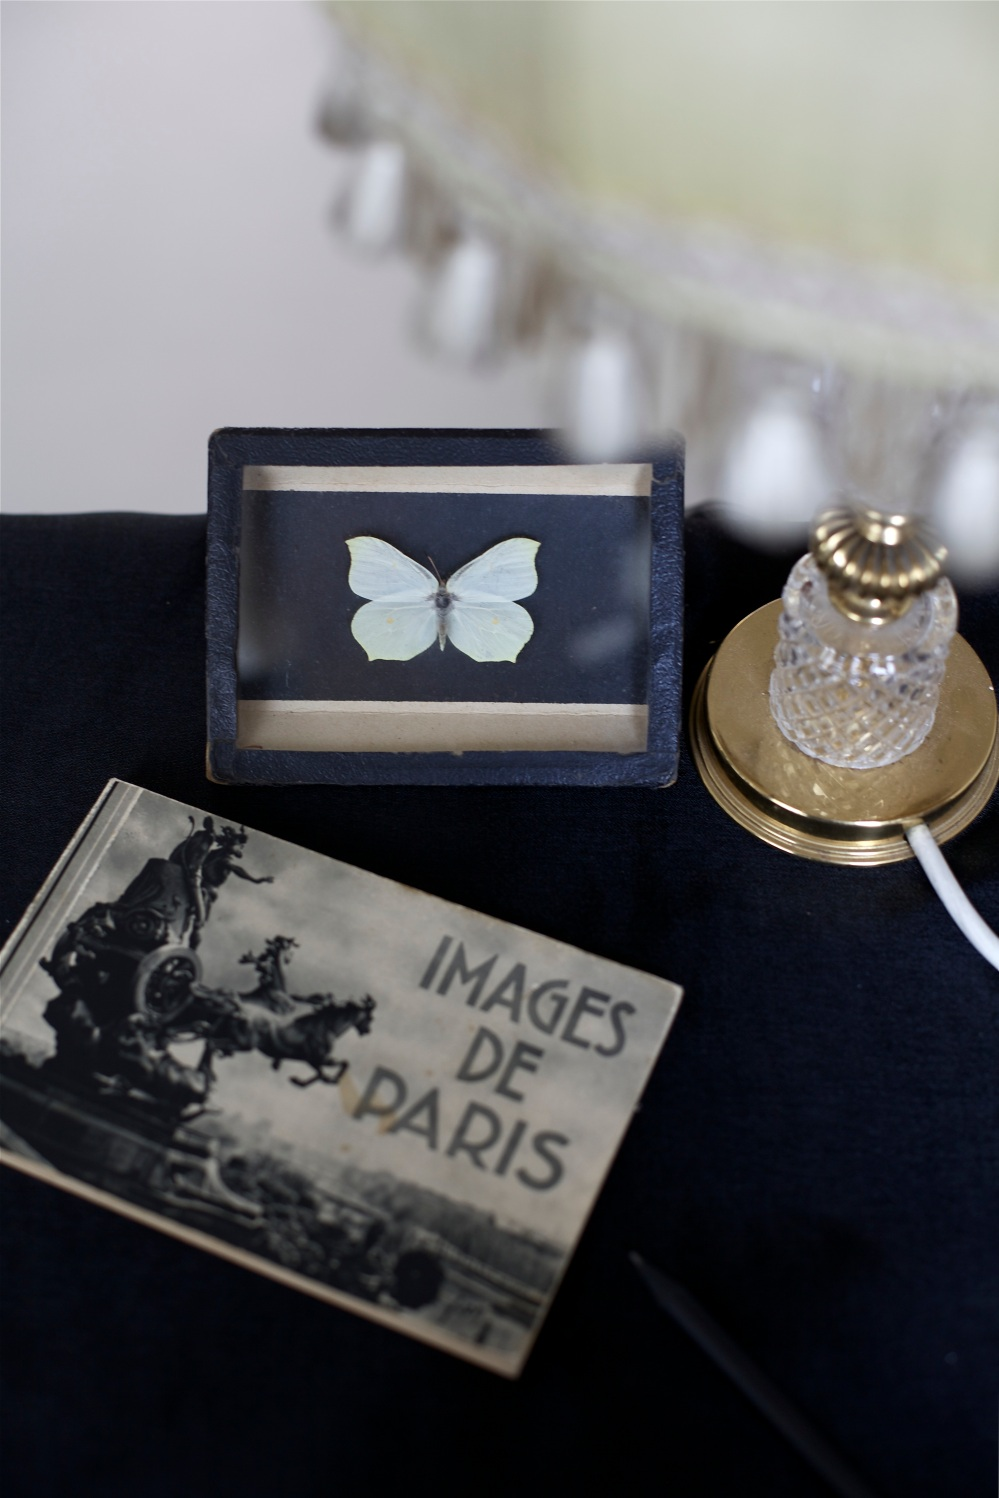 Paris and butterflies details via Stilzitat blog